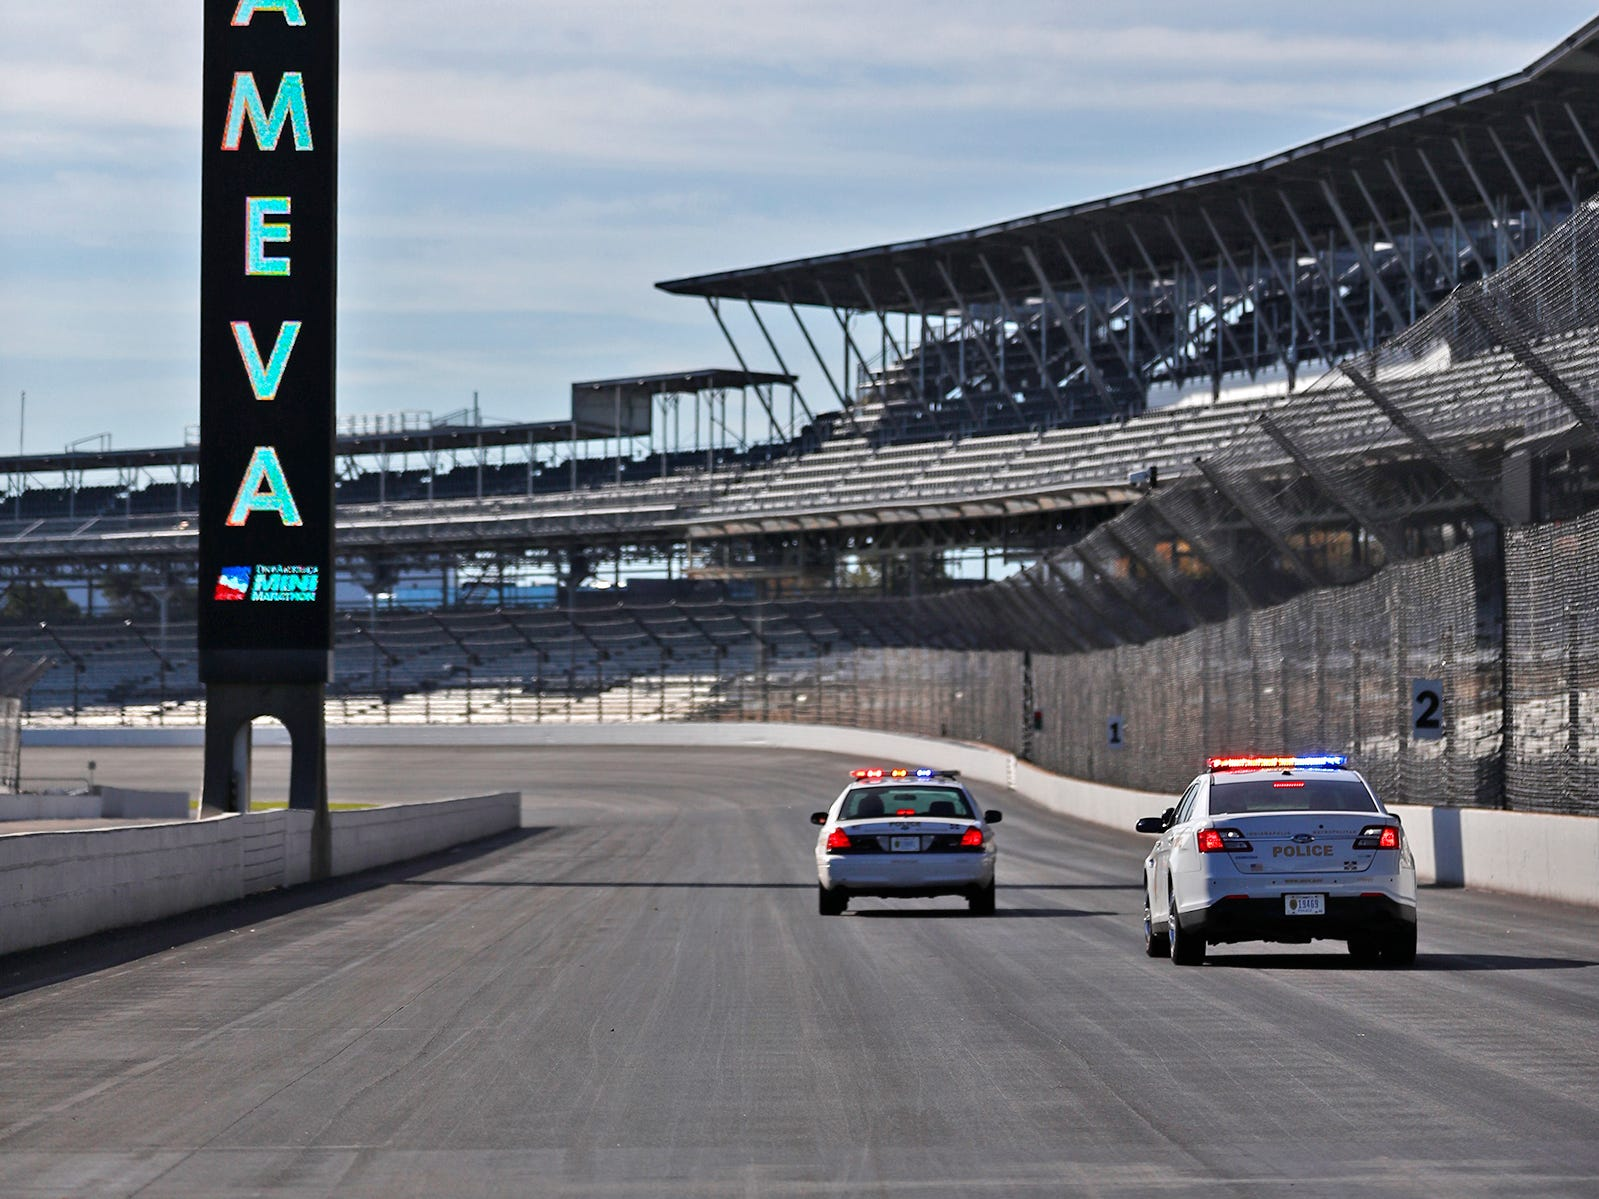 The Indianapolis Motor Speedway pylon touts Team Eva, Wednesday, Oct. 24, 2018, during the pace-setting run for the 2019 OneAmerica 500 Festival Mini-Marathon.  The 500 Festival will donate $1 to the CANDLES Holocaust Museum in Terre Haute for every mini-marathon participant who finishes the 2019 race in a better time than Team Eva.  Holocaust survivor Eva Kor ran the very last of the relay race.